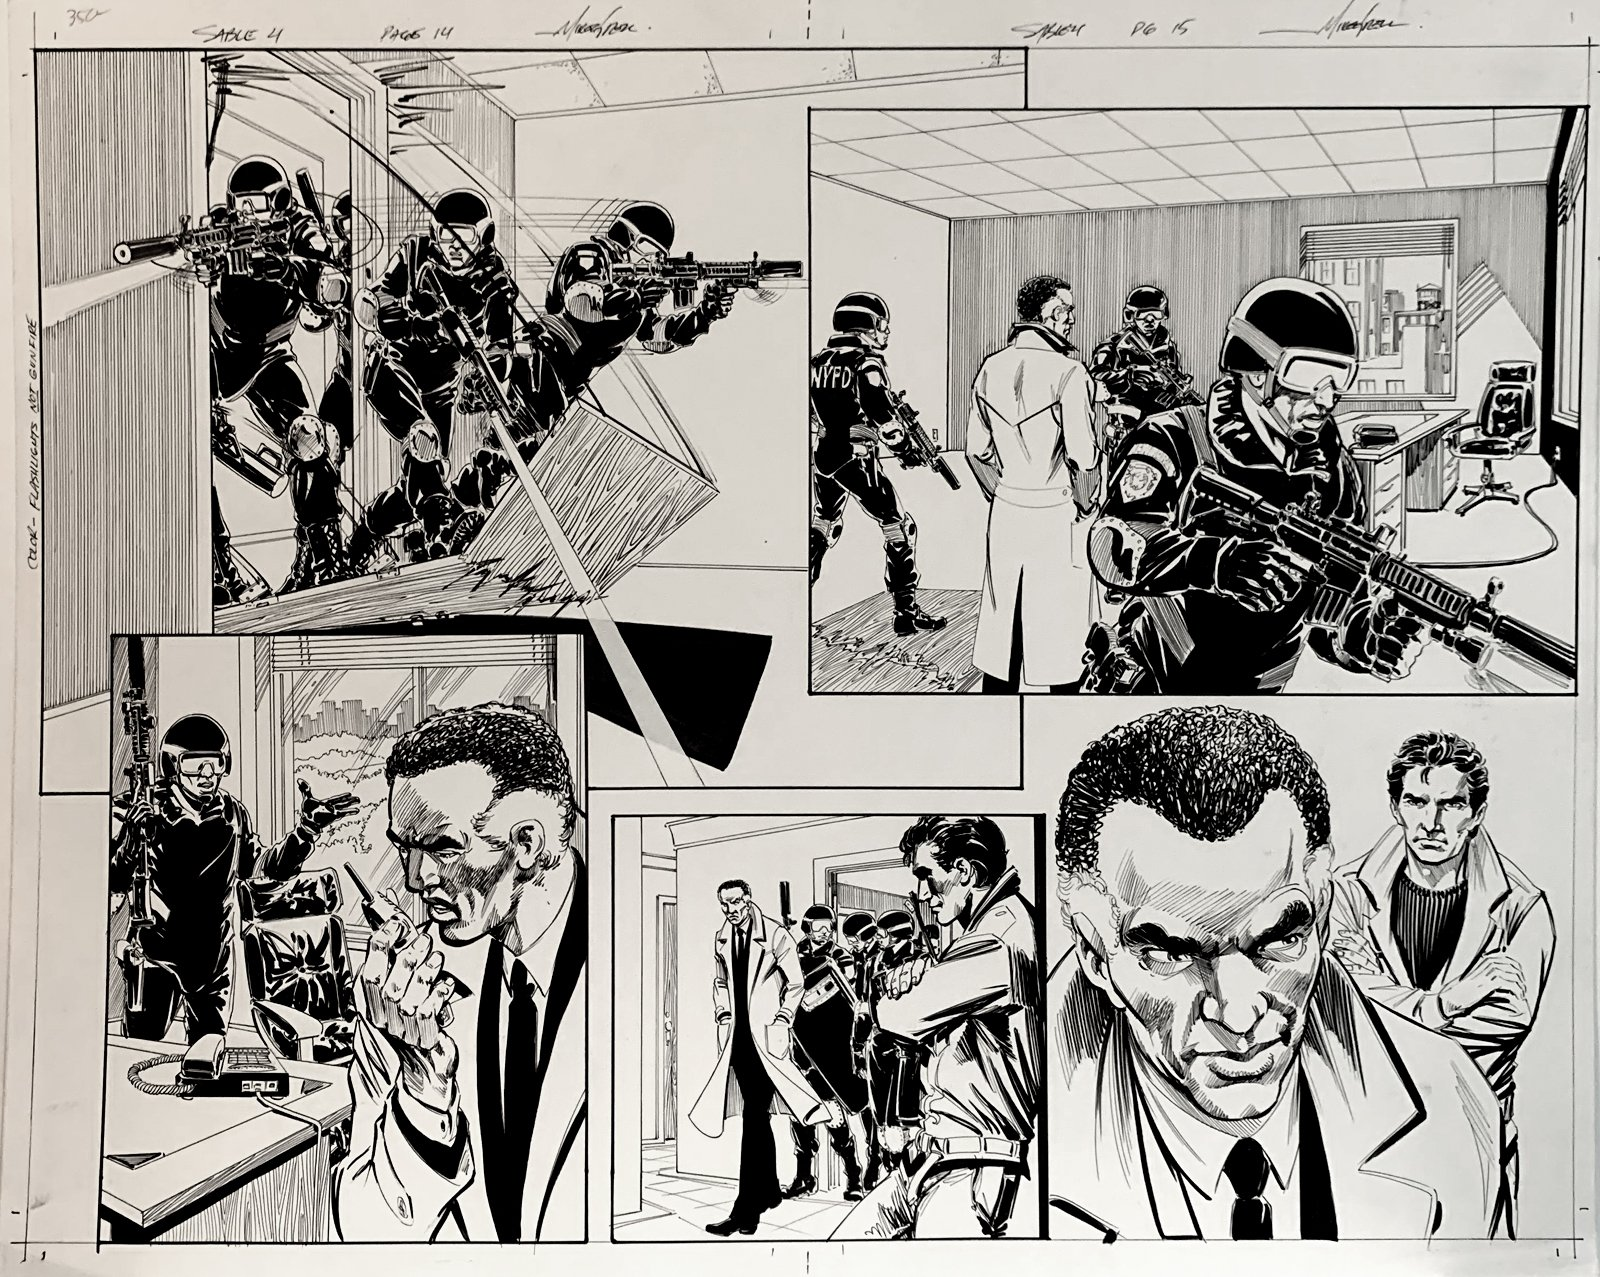 Jon Sable, Freelance: Bloodtrail #4 p 14-15 Huge Double Page Spread On 1 Large Board! (2005)